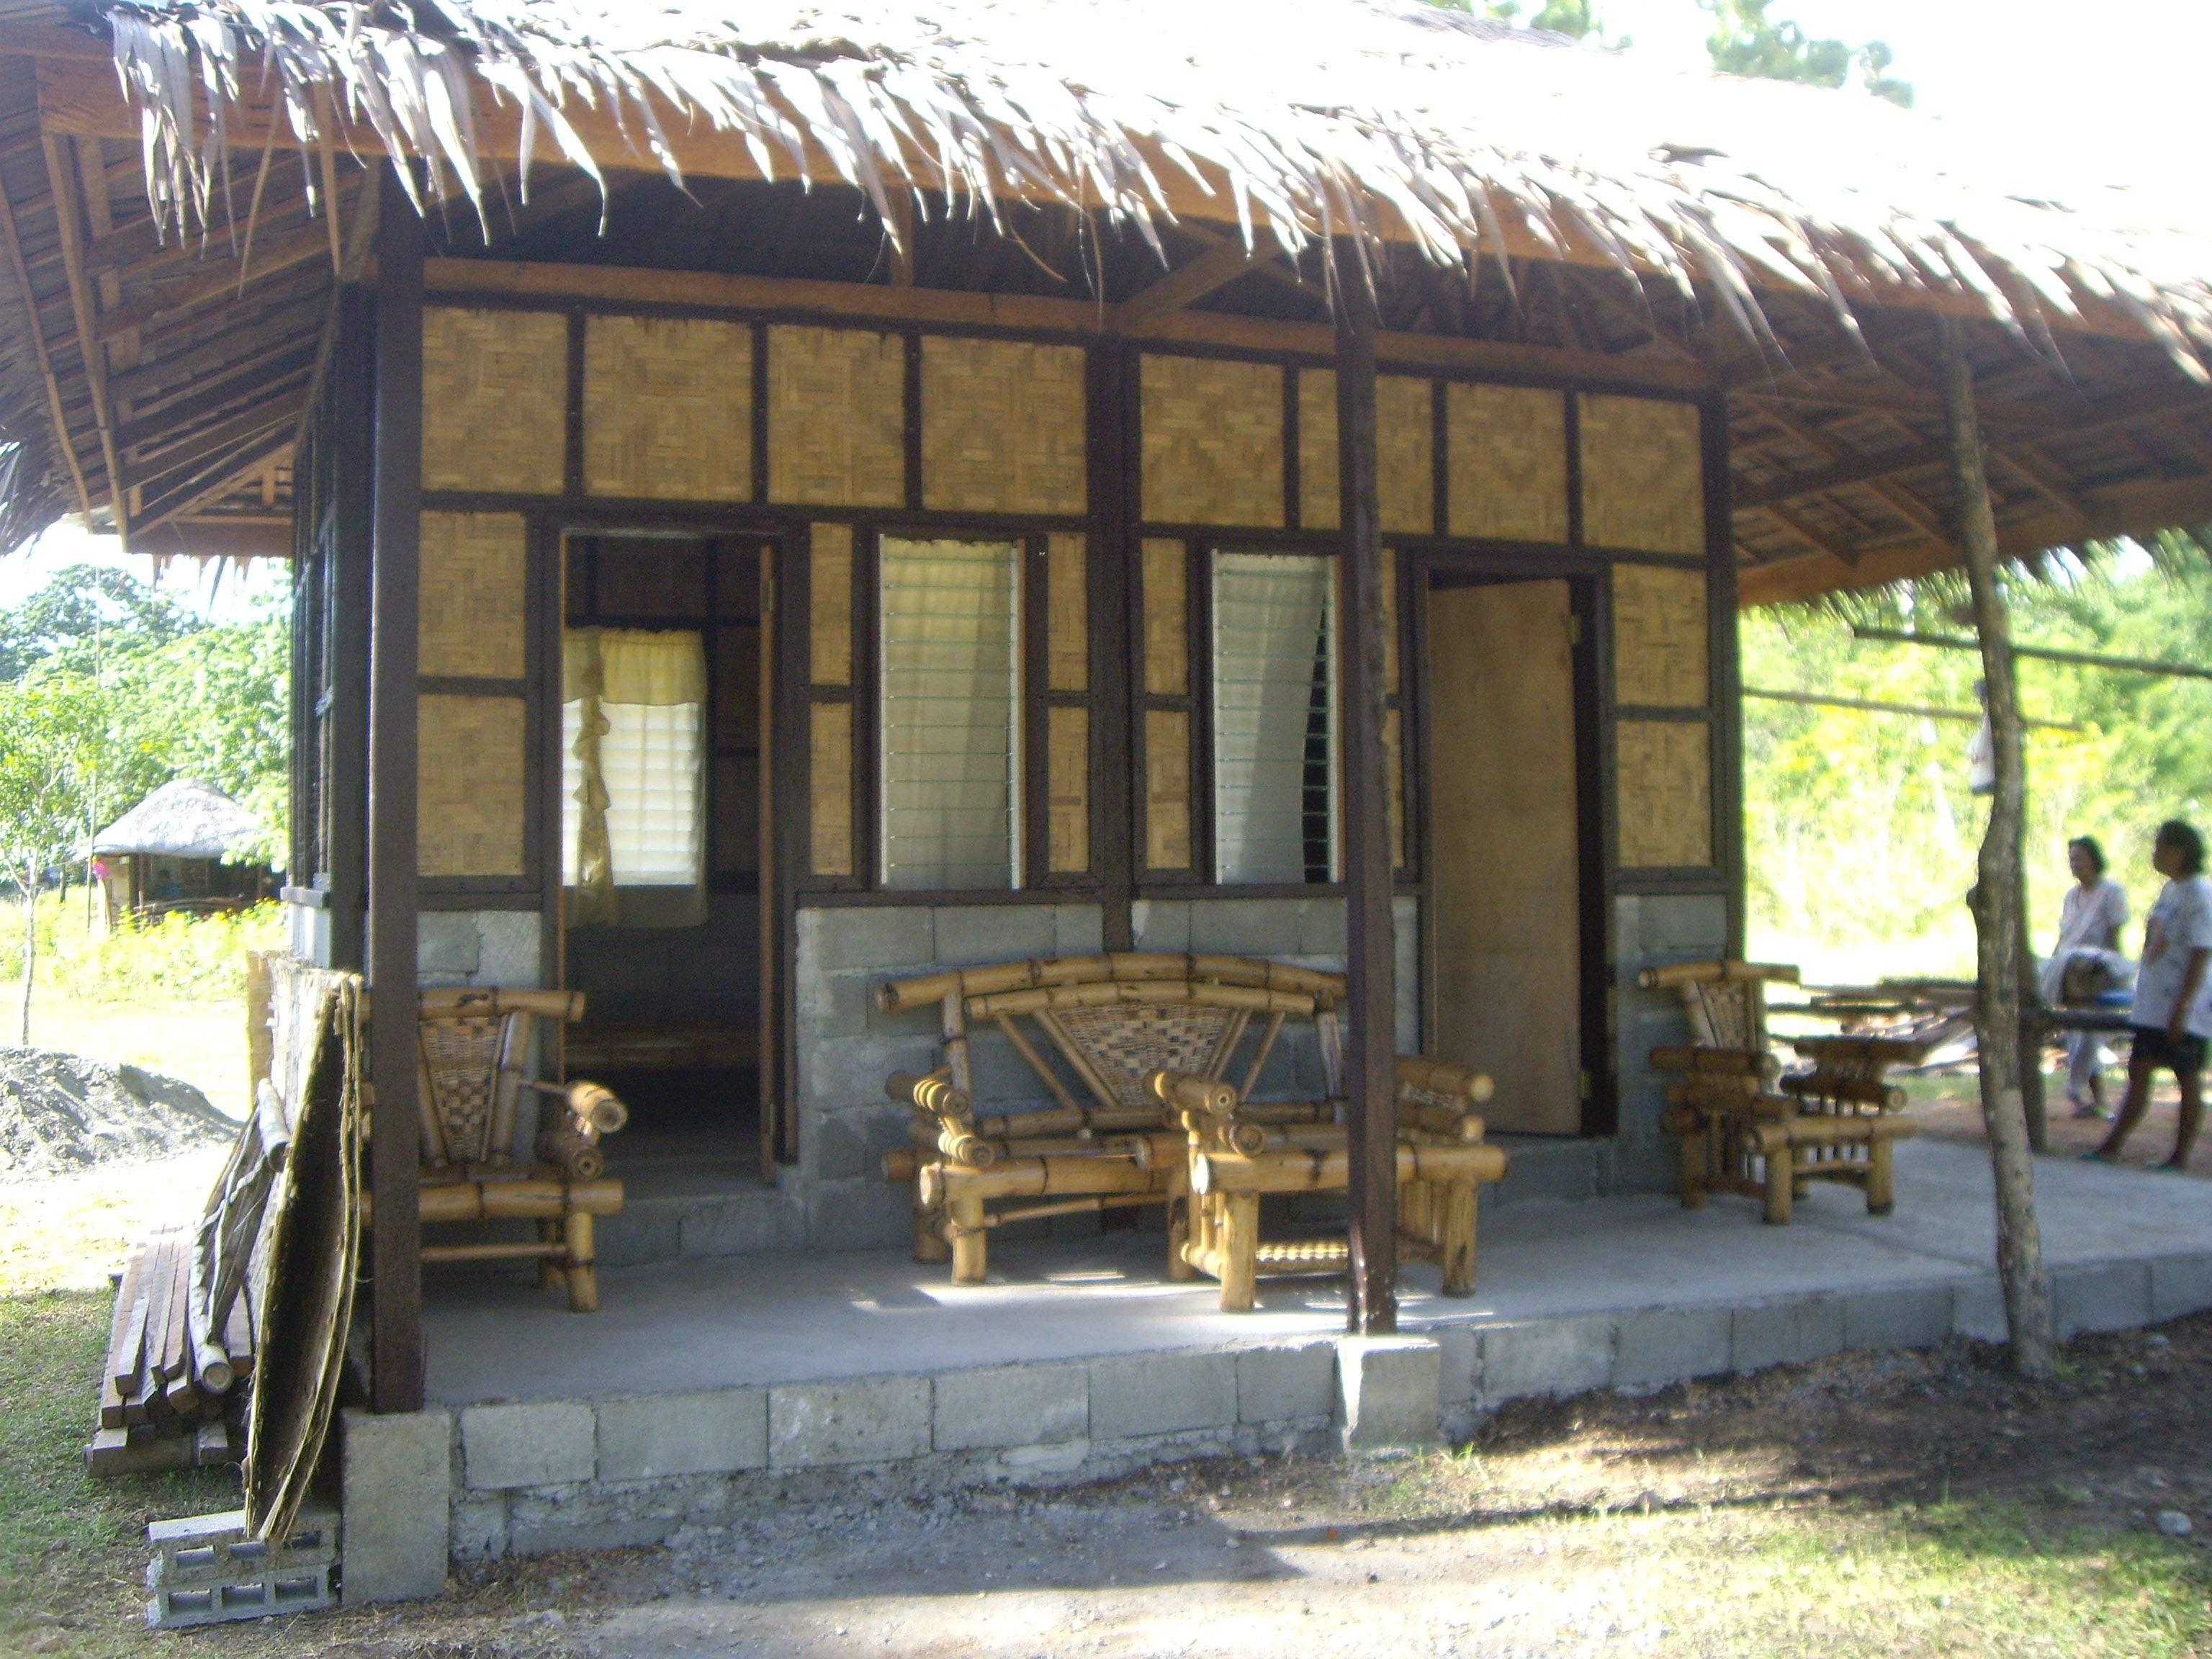 Bahay kubos arrive samal bahay kubo for Small house design native